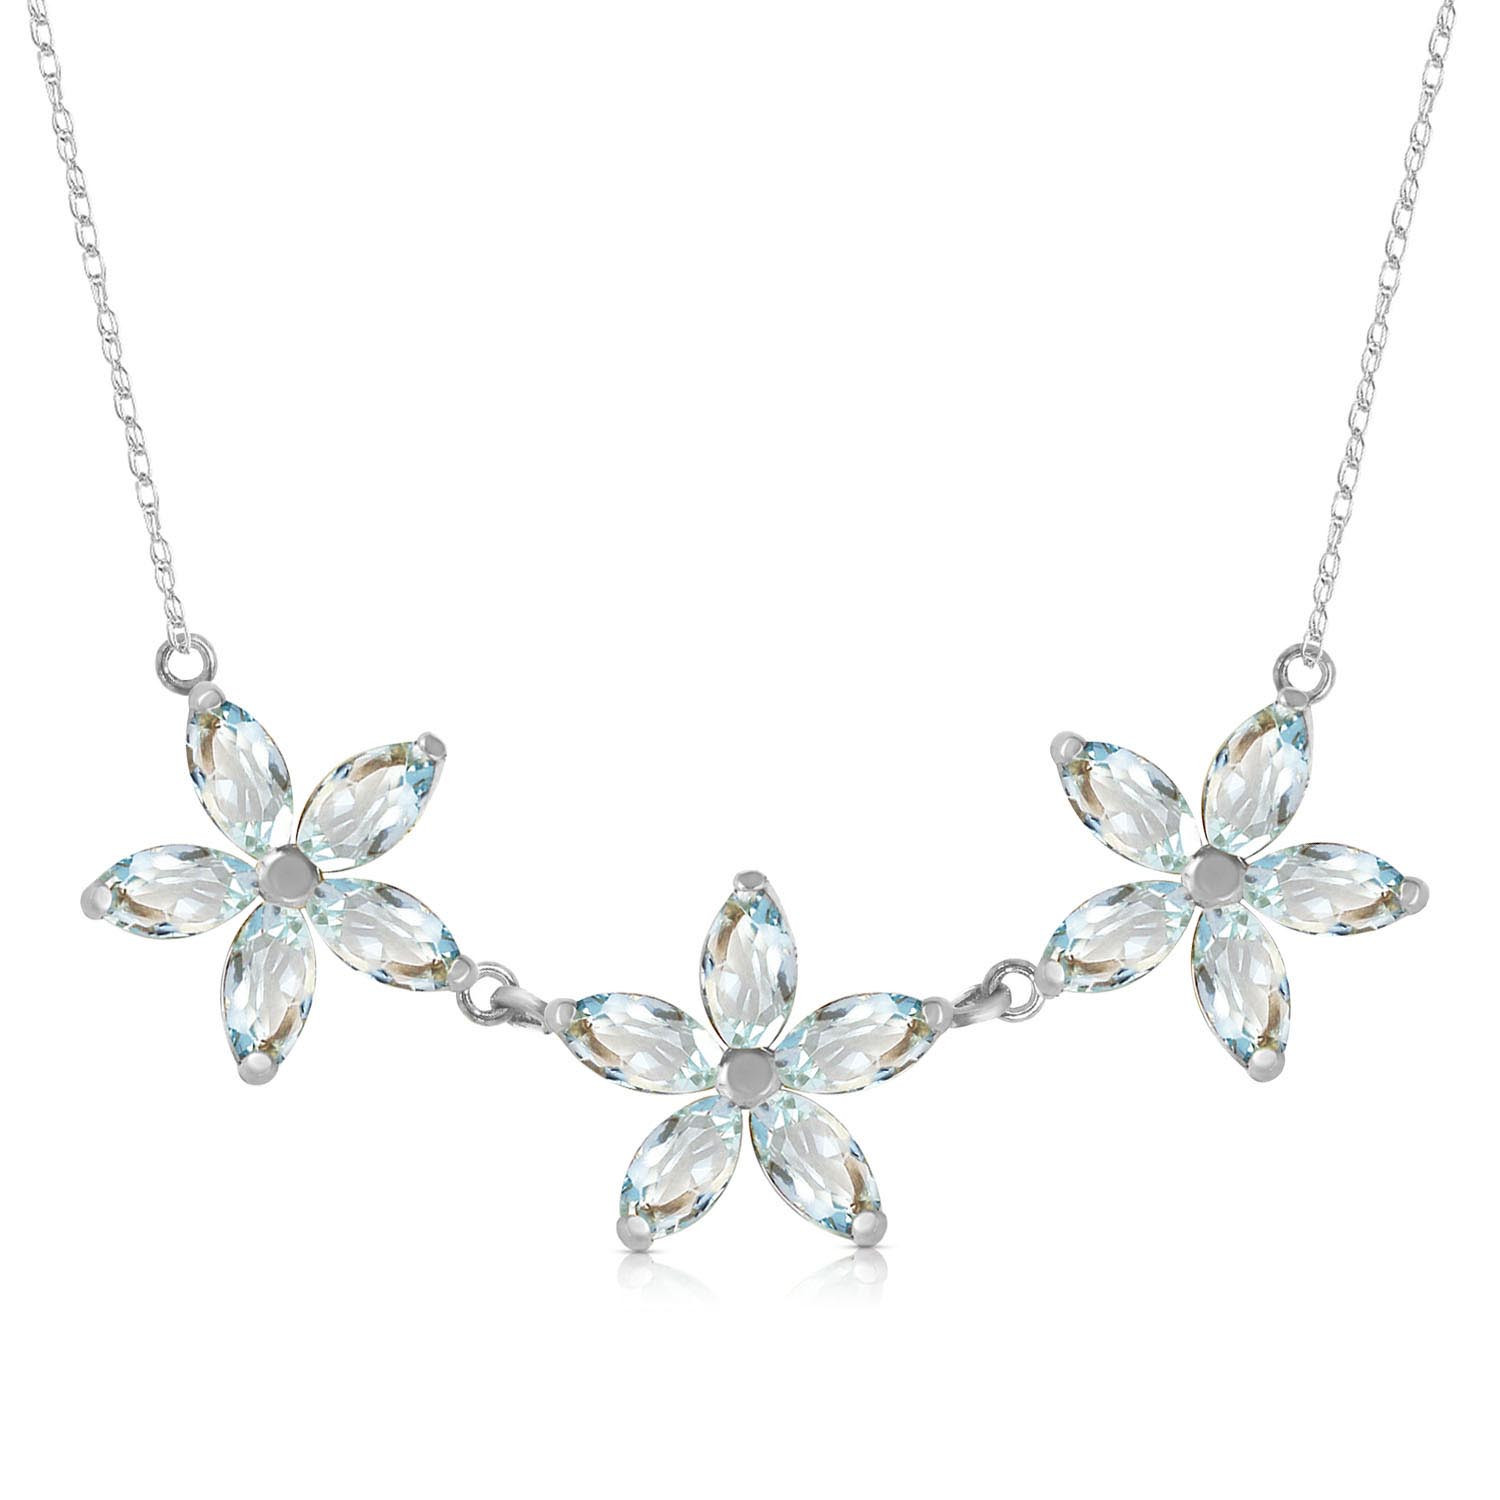 Marquise Cut Aquamarine Pendant Necklace 4.2 ctw in 9ct White Gold